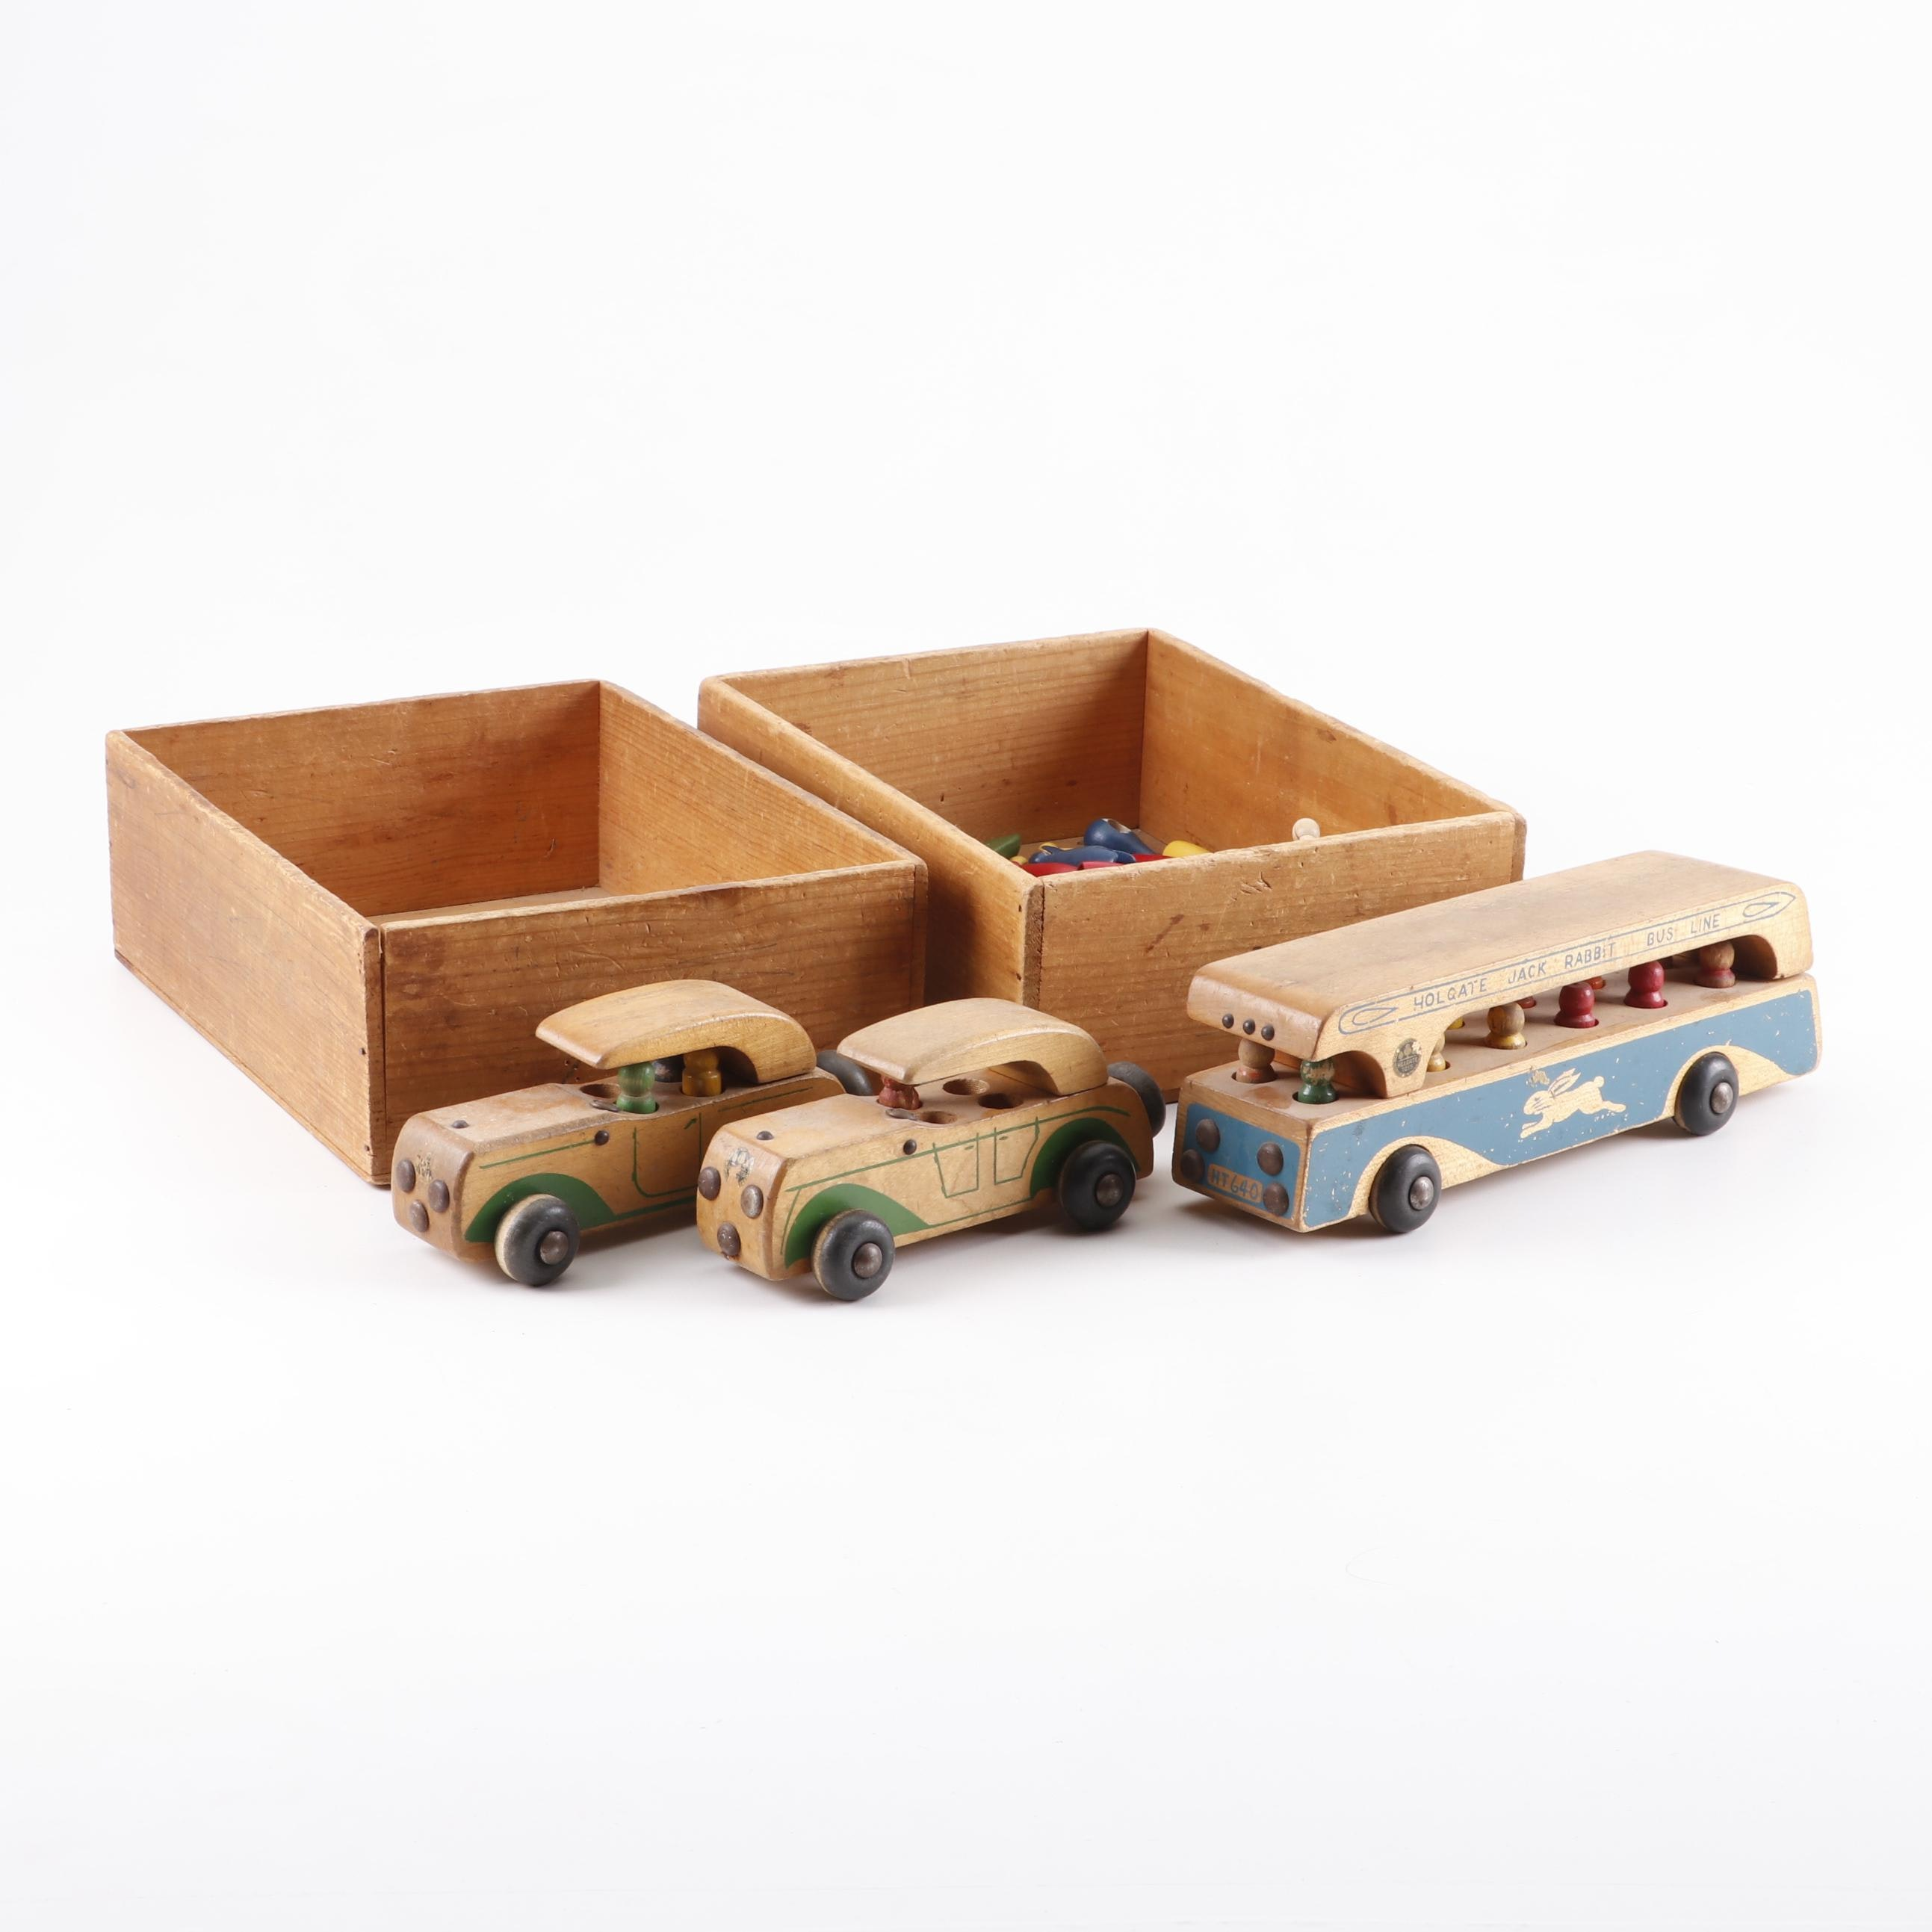 1940s Wooden Toy Collection and Bins